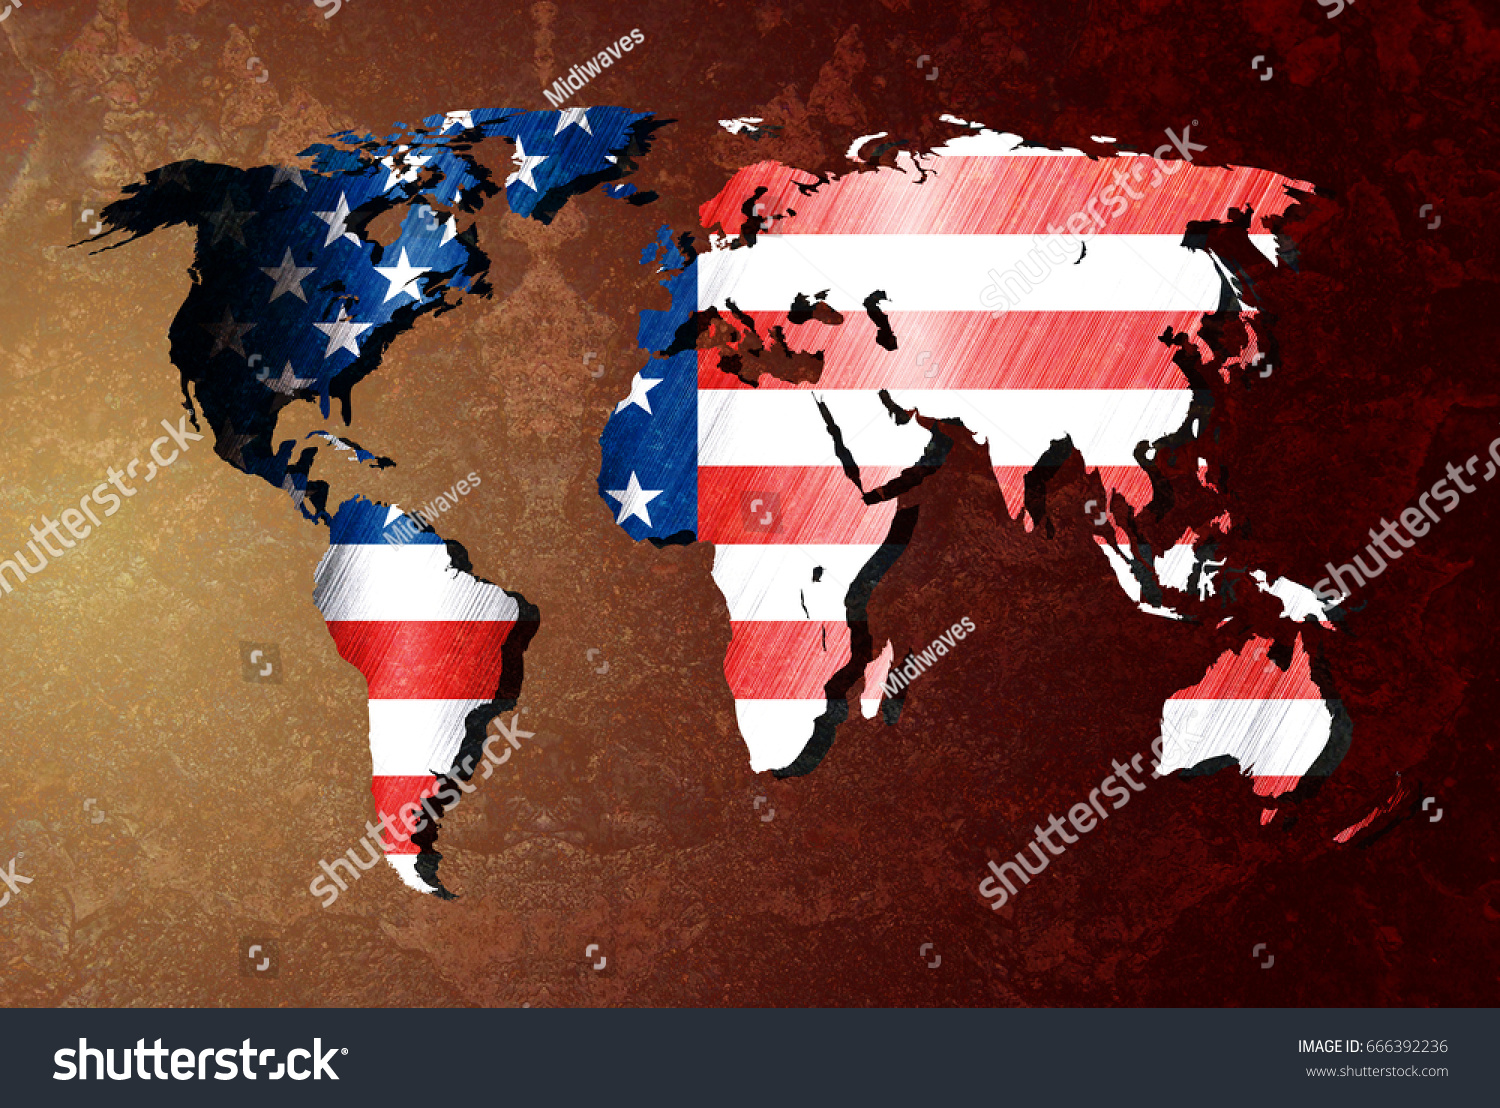 Usa flag on metallic world map stock illustration 666392236 usa flag on metallic world map stock illustration 666392236 shutterstock gumiabroncs Images